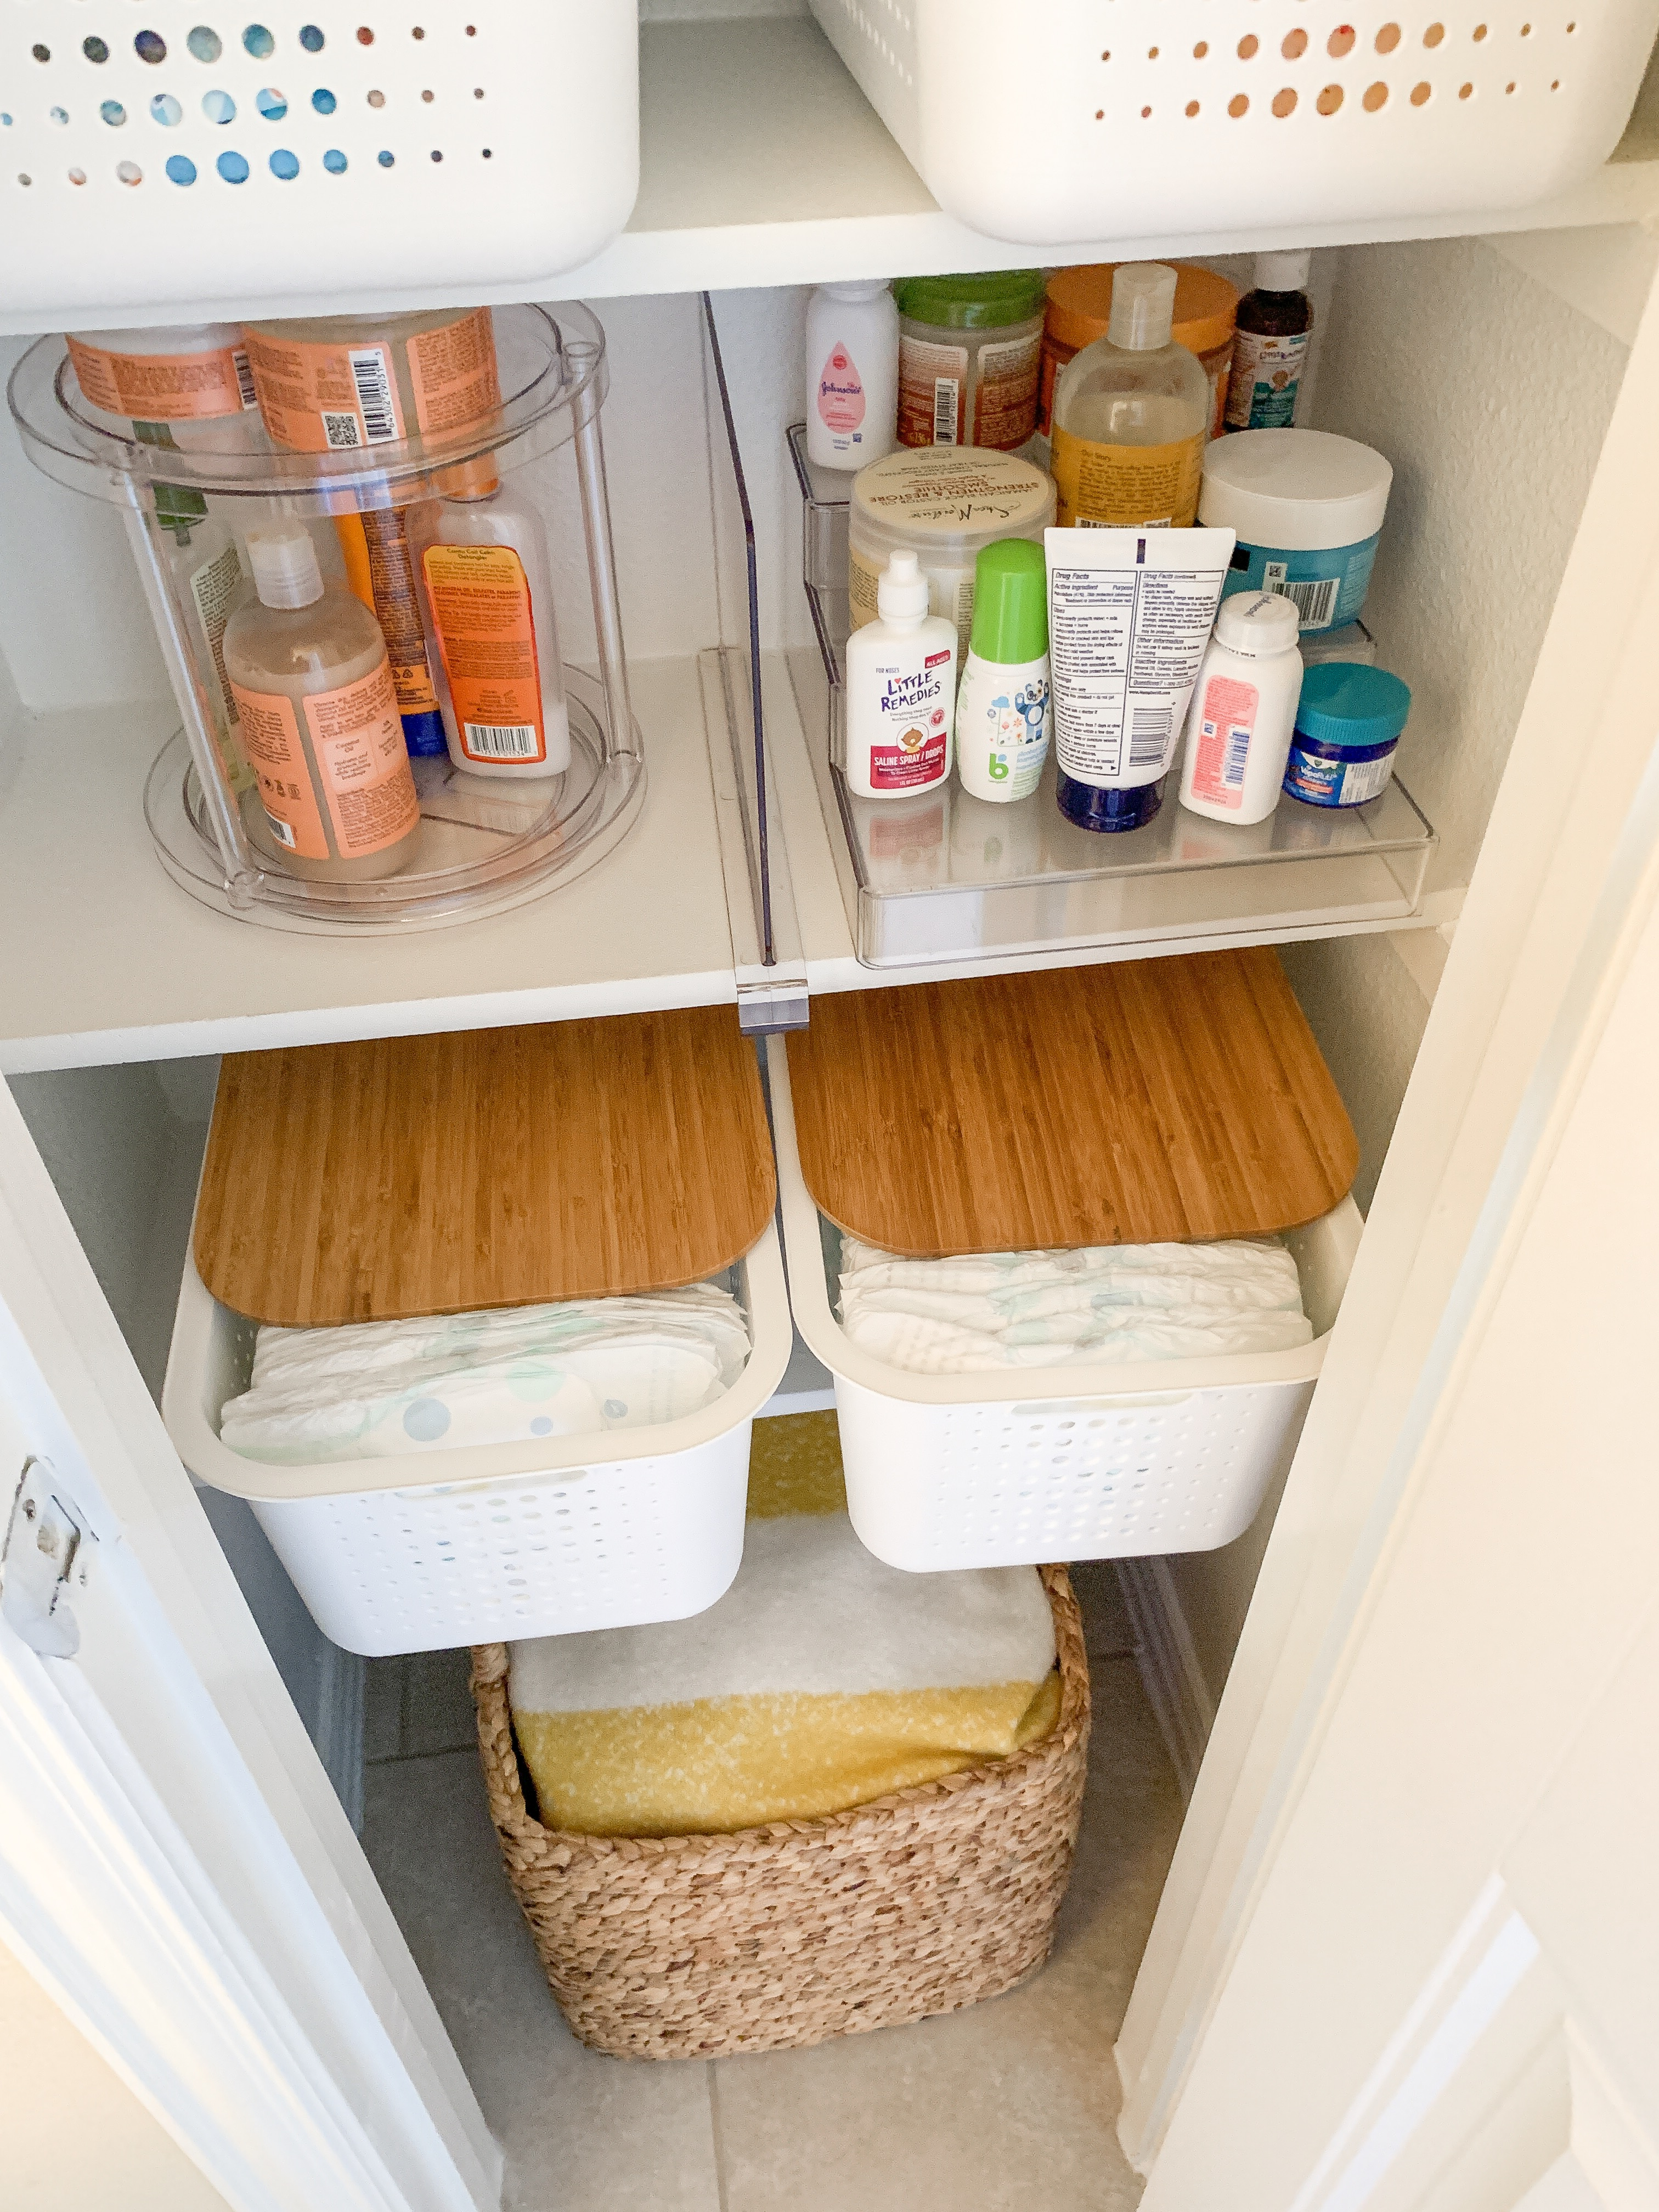 Bathroom Organization tips featured by top US lifestyle blog, Glamorous Versatility